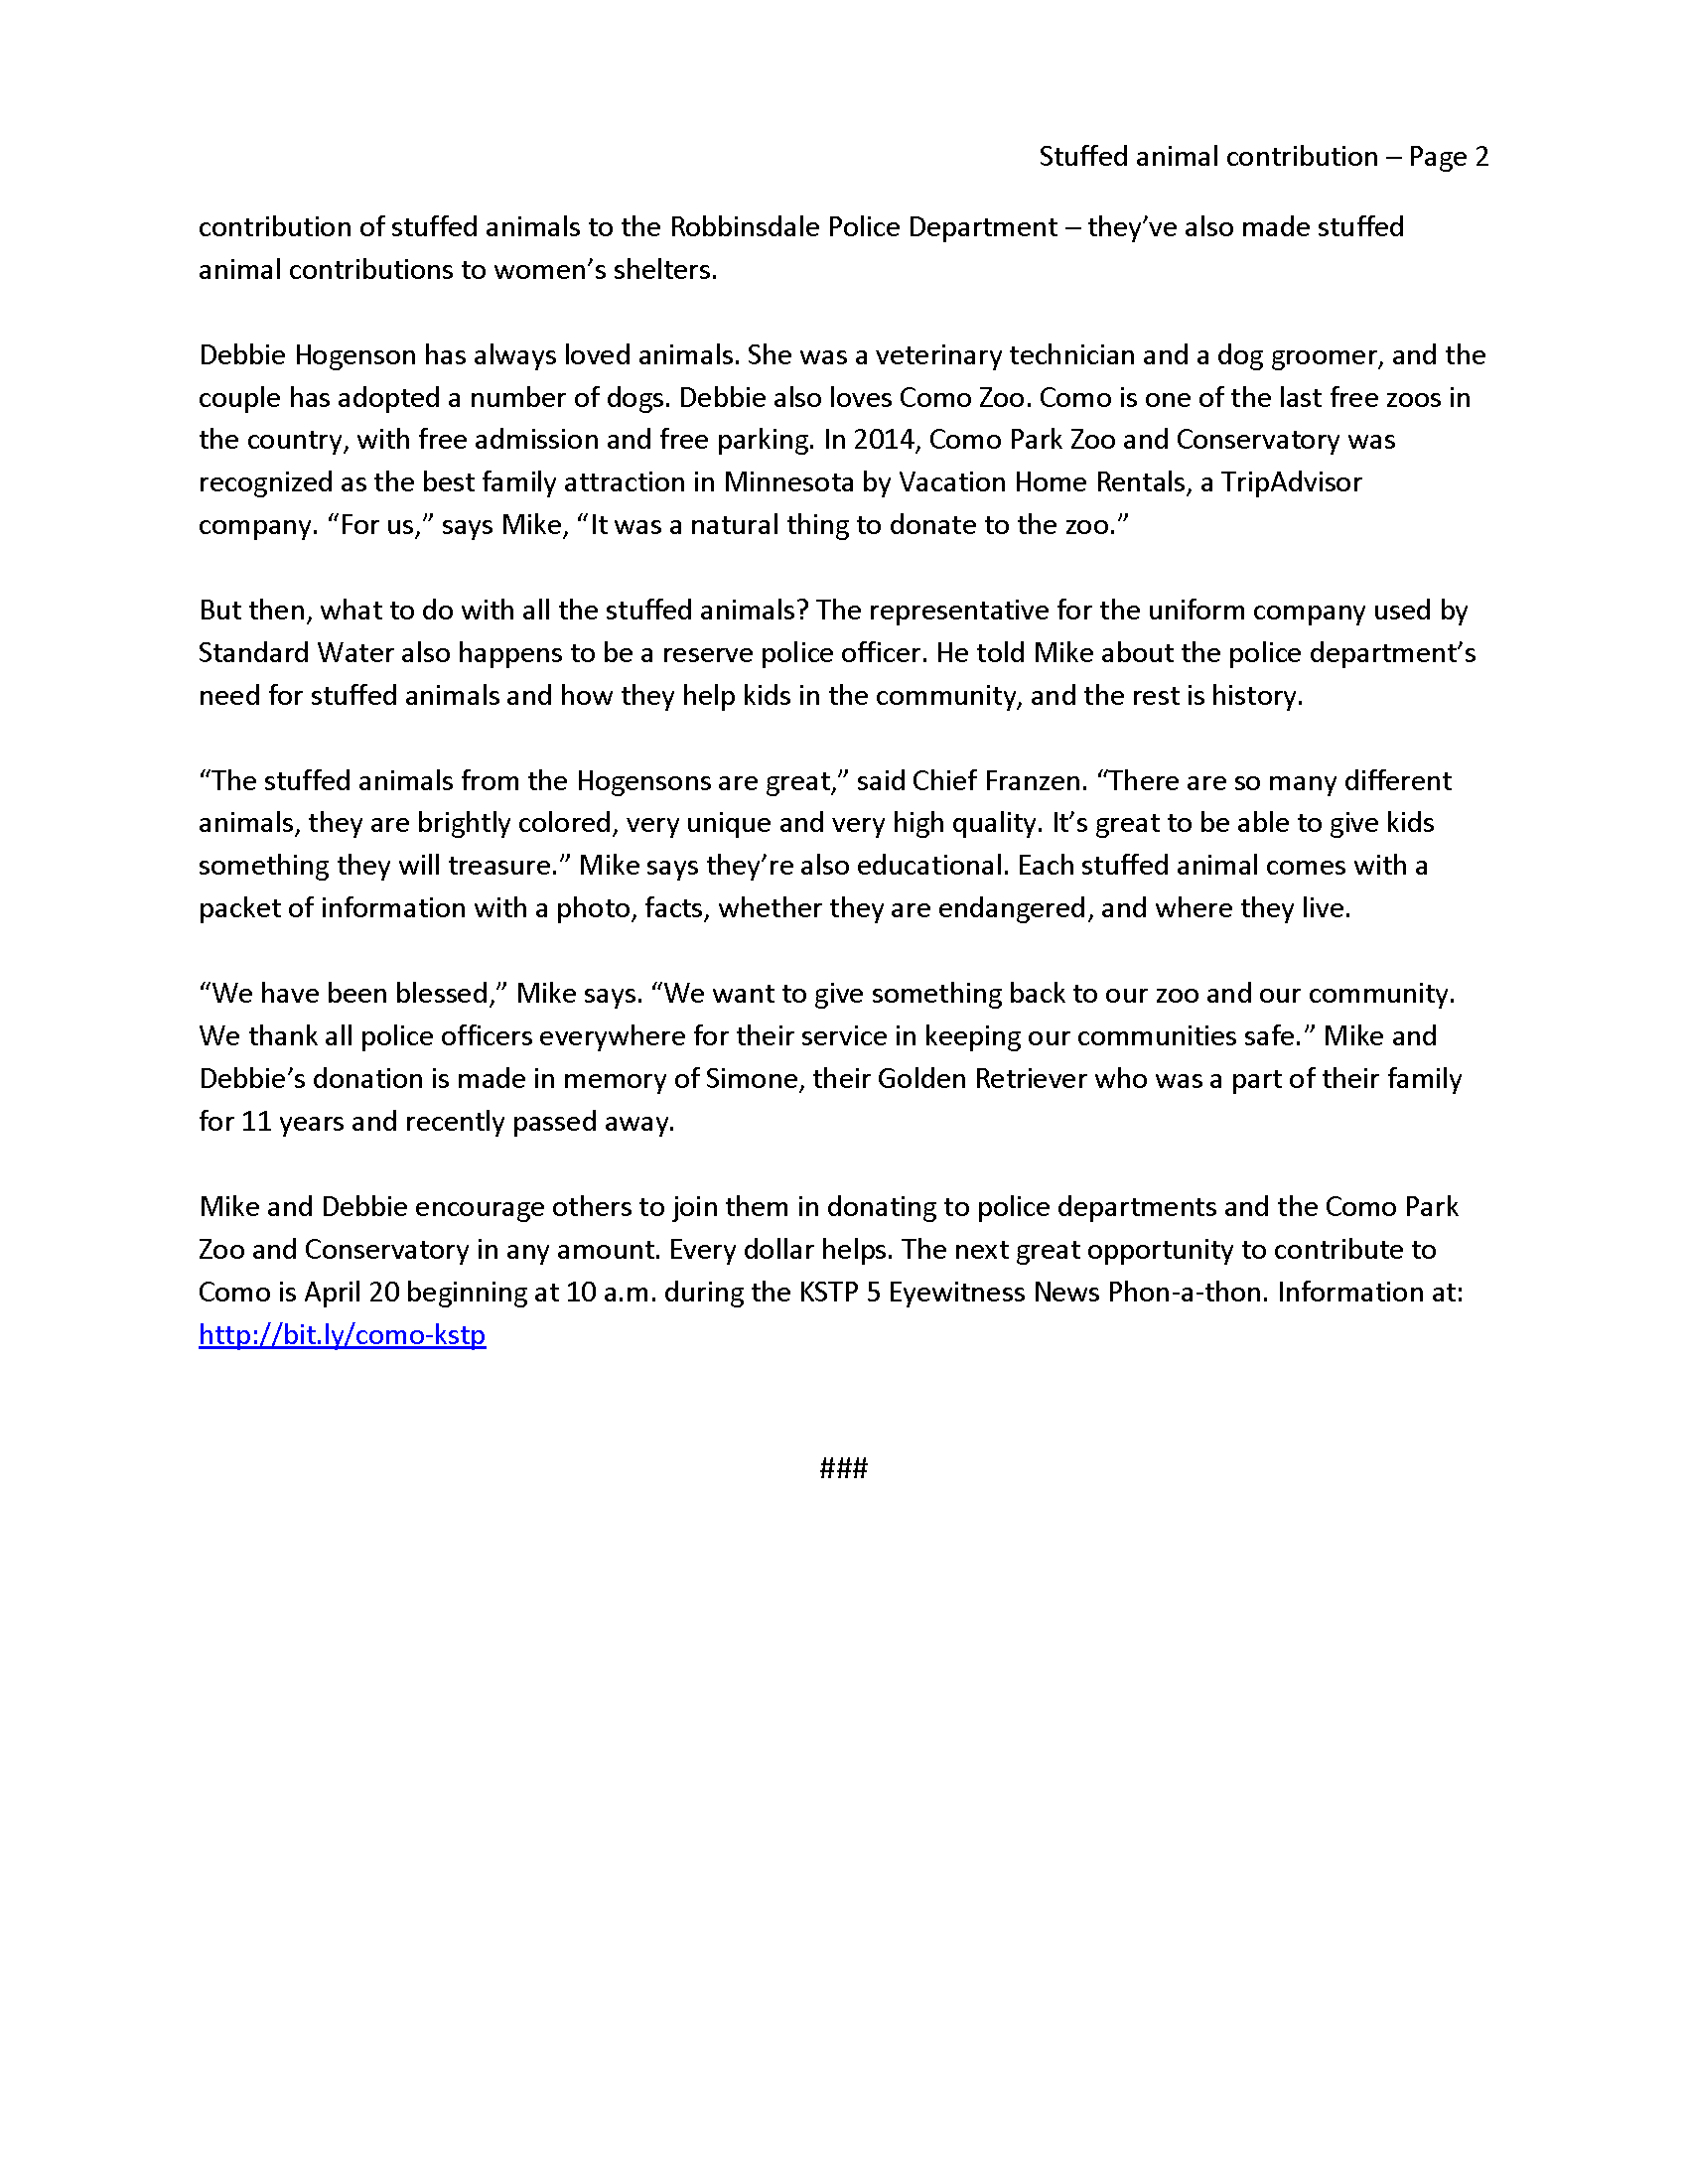 Stuffed animal donation press release_Page_2